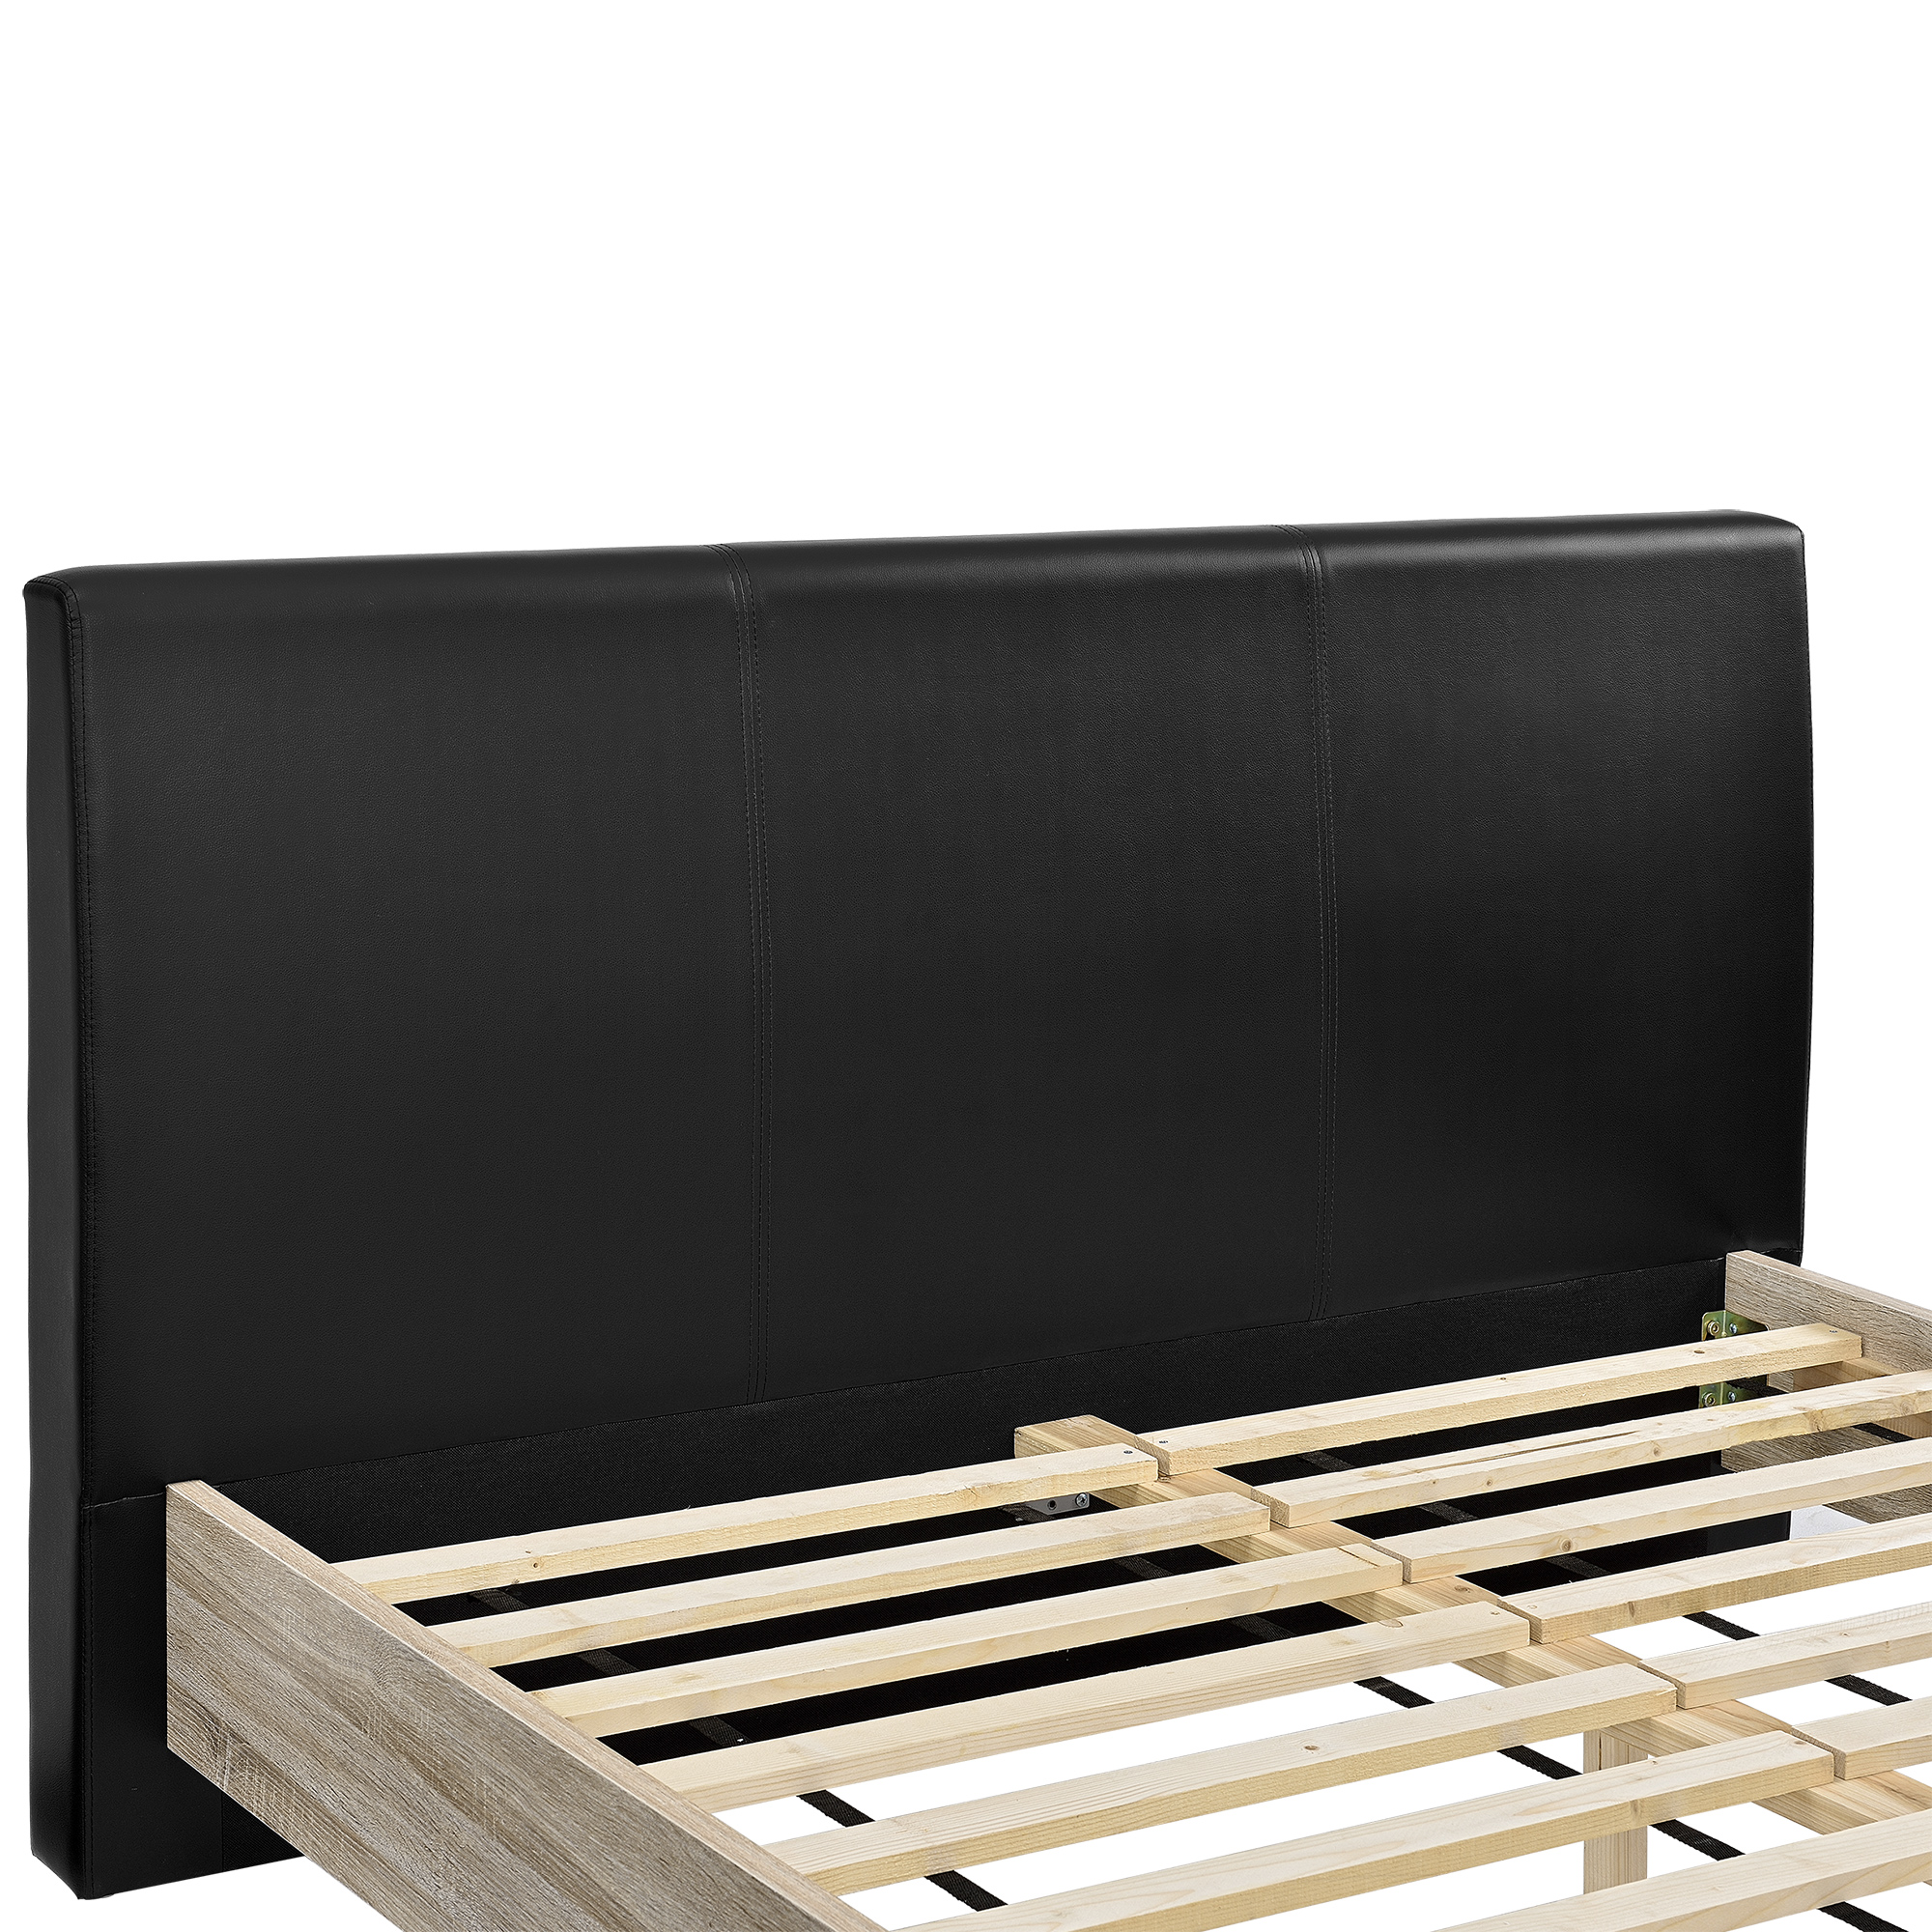 design polsterbett 140x200cm holz doppel bett. Black Bedroom Furniture Sets. Home Design Ideas